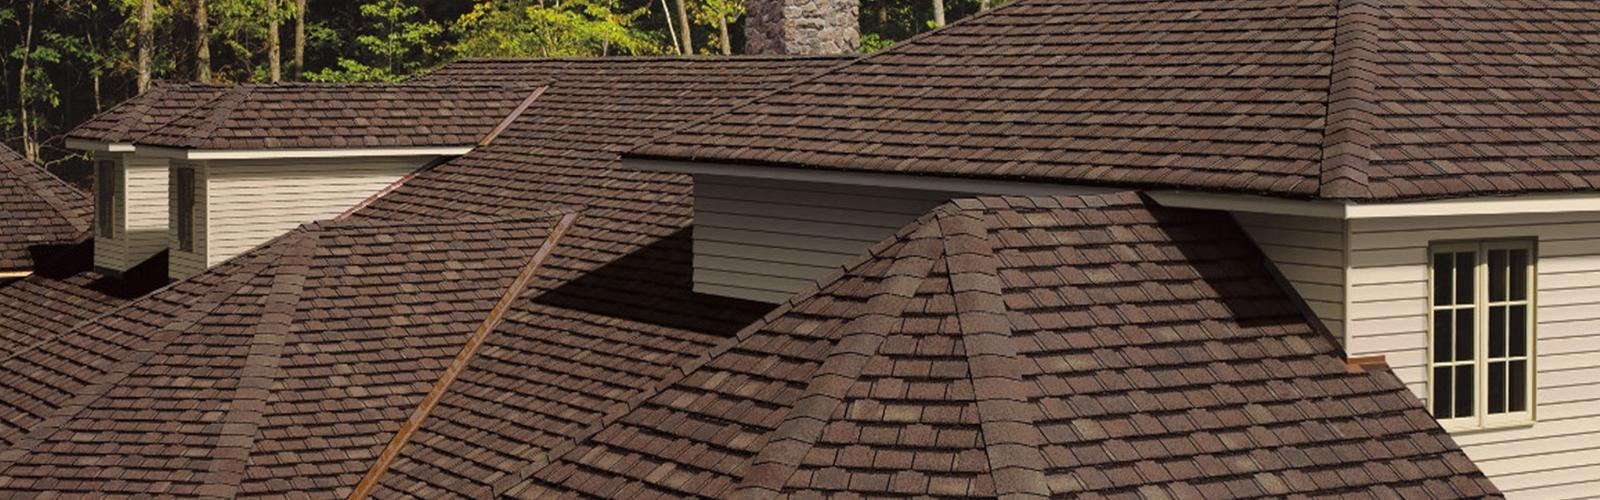 Frank's Roofing Solutions Images